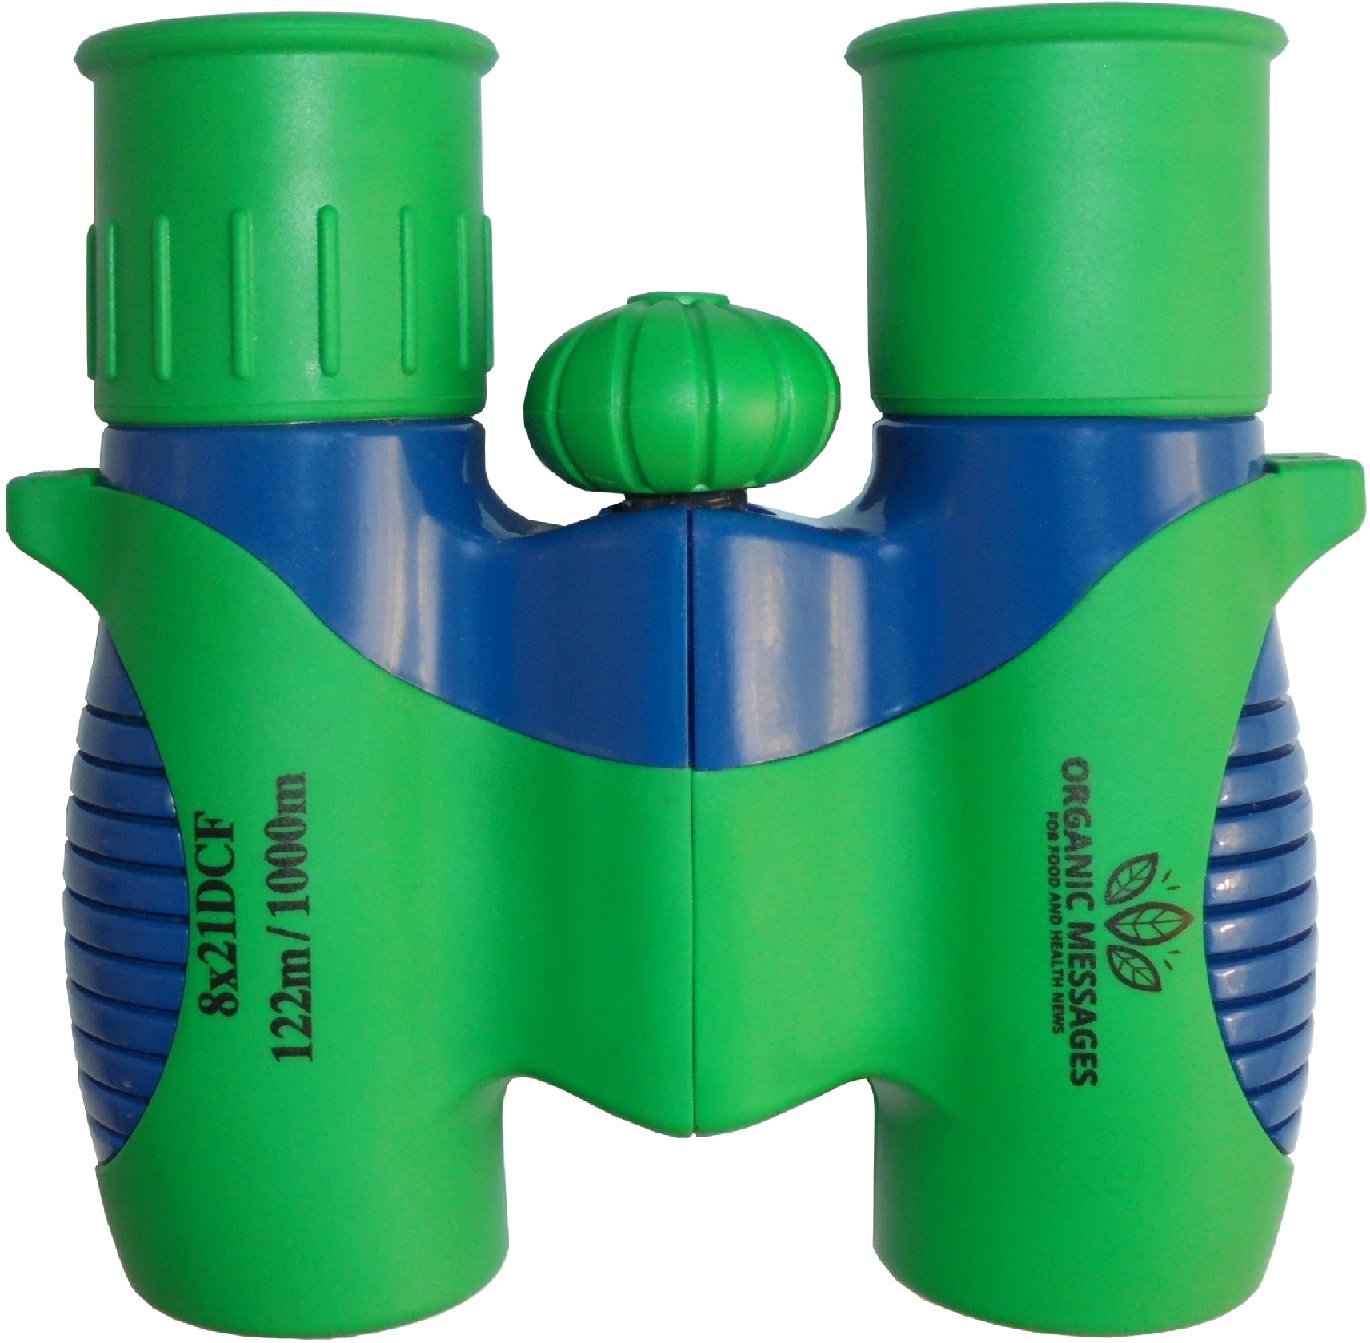 Kid Binoculars set by Organic Messages Shock Proof green Real 8x21 lenses High Resolution Optics, best fun Birthday Present kids outdoor Toys for Boy or Girl Sport Events Theater BirdWatching opera